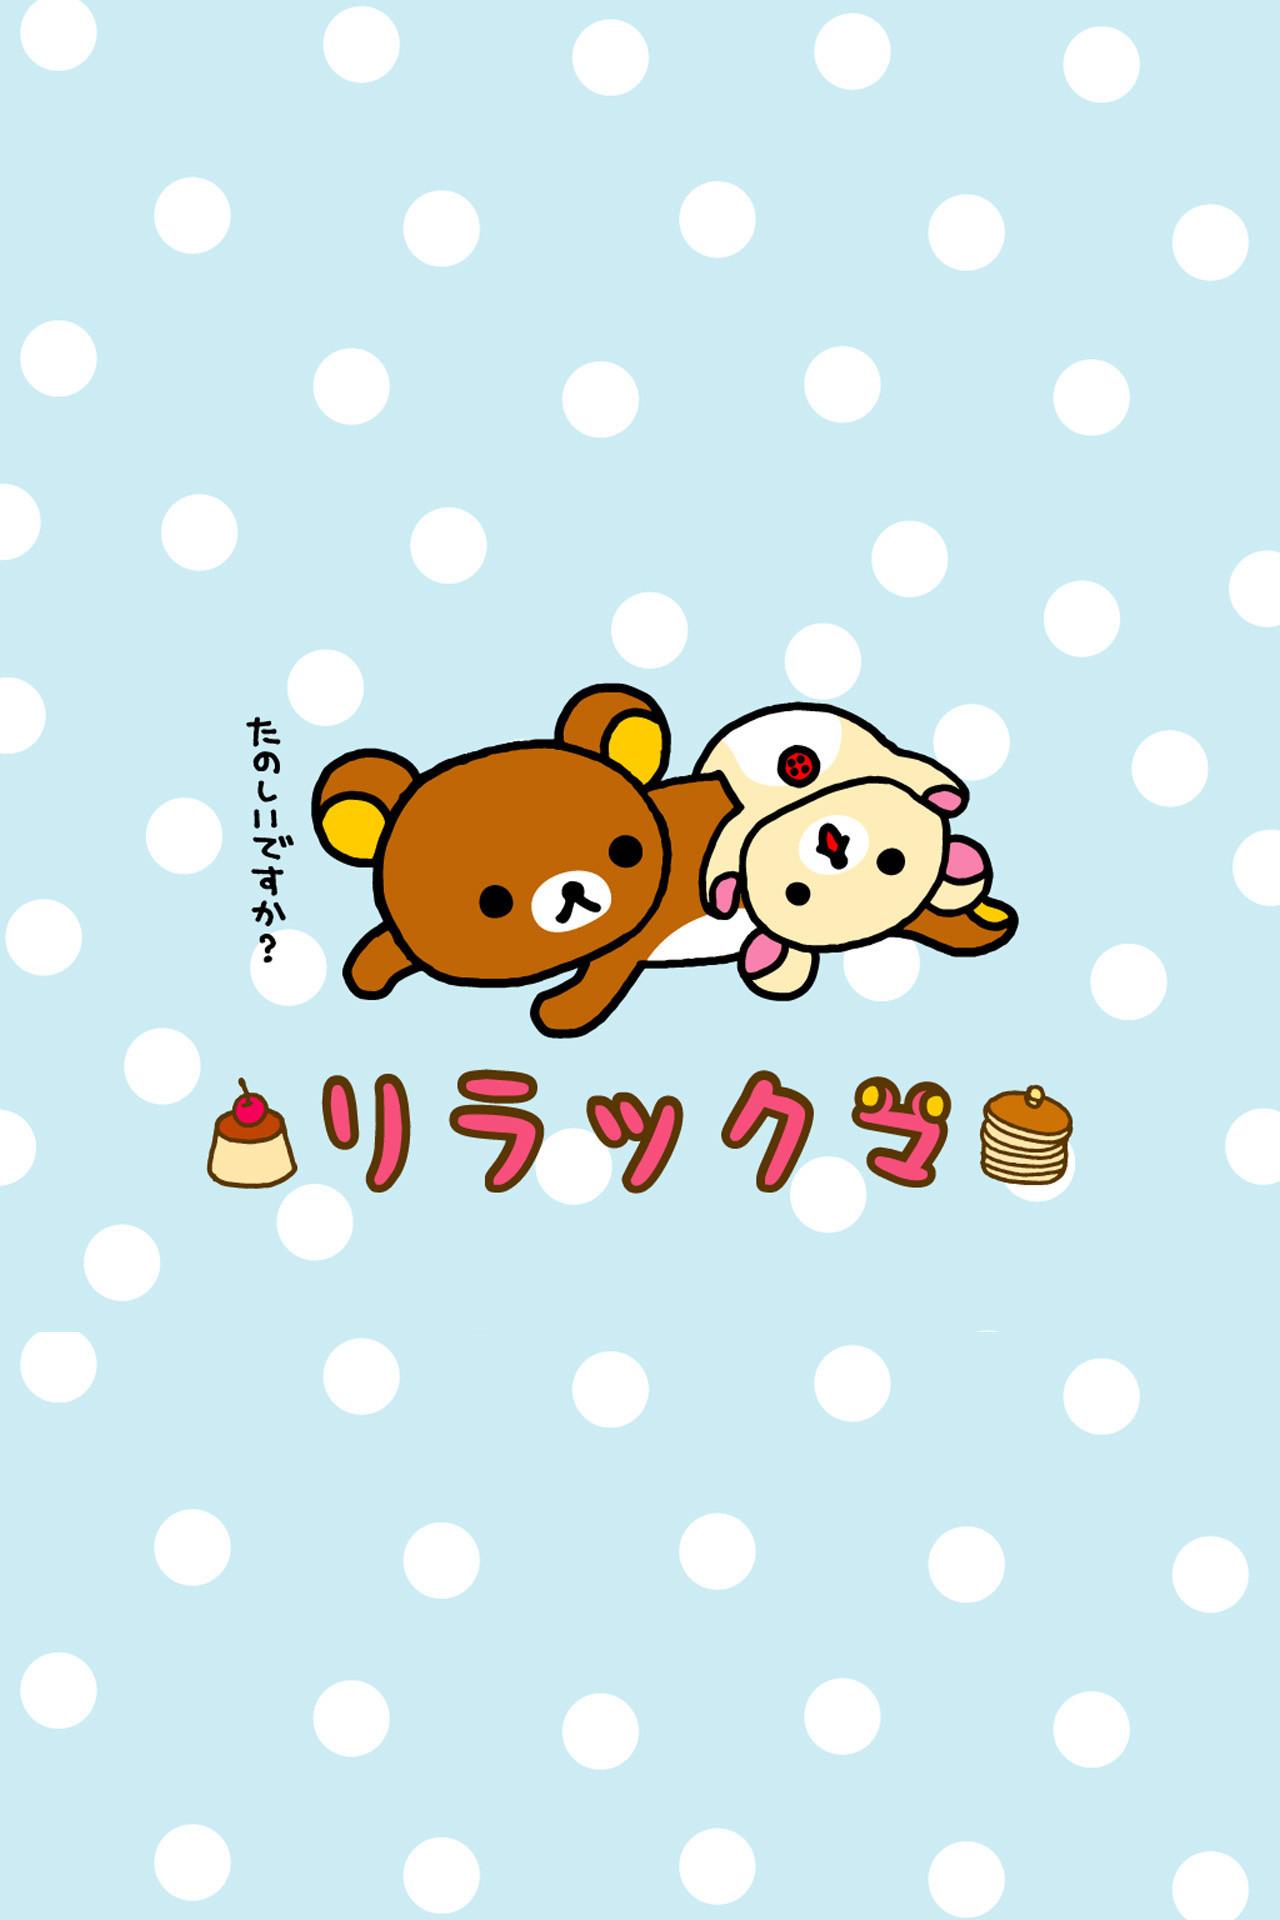 Rilakkuma Wallpapers   Free for iPhone and Galaxy from Lollimobile